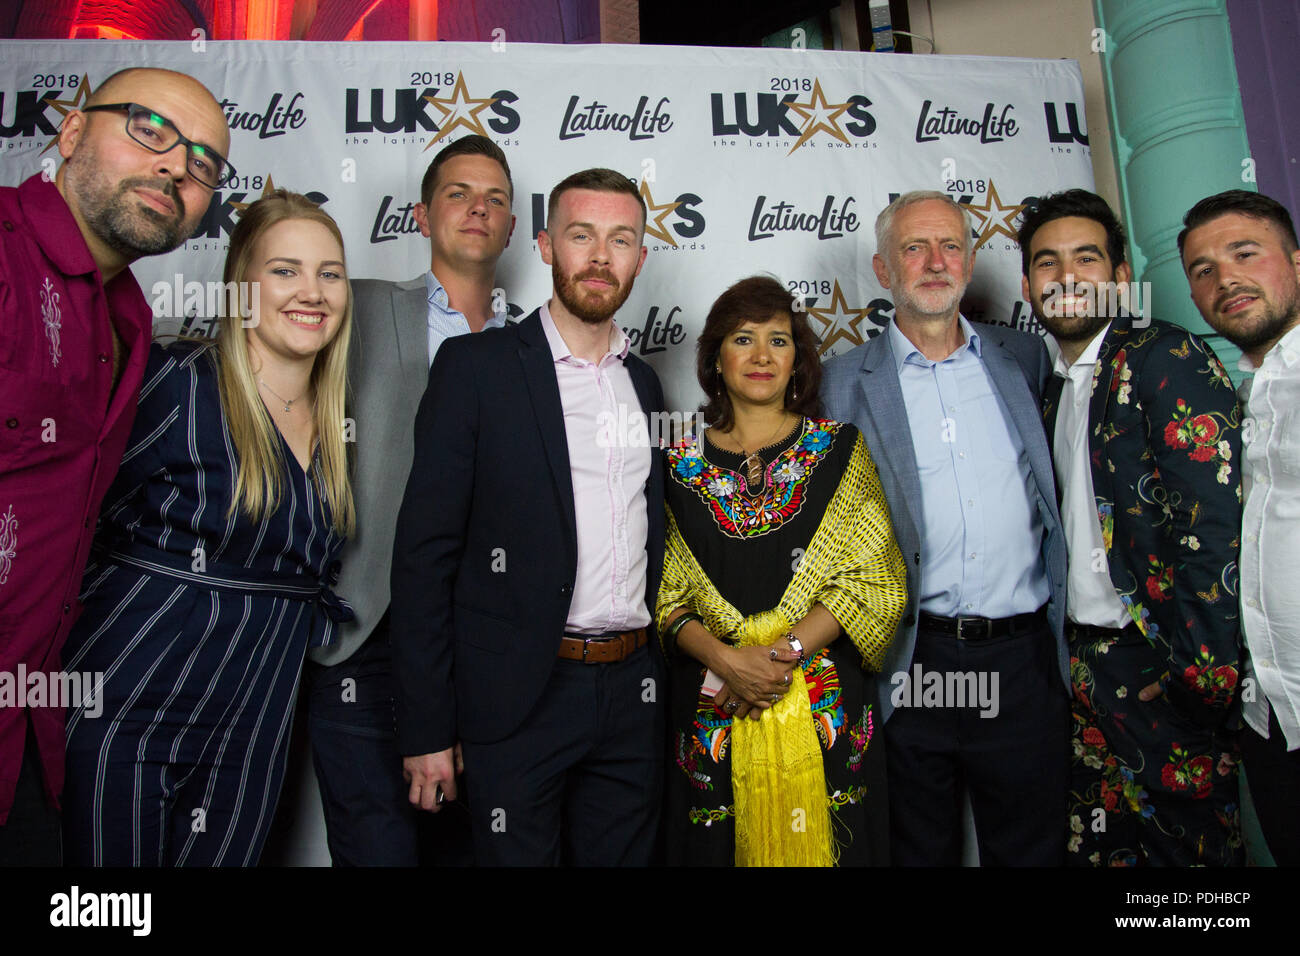 The Troxy, London, UK. 9th August 2018. Leader of the opposition attends the LUKAS Awards with his wife. Credit: Brayan Lopez/Alamy Live News Stock Photo